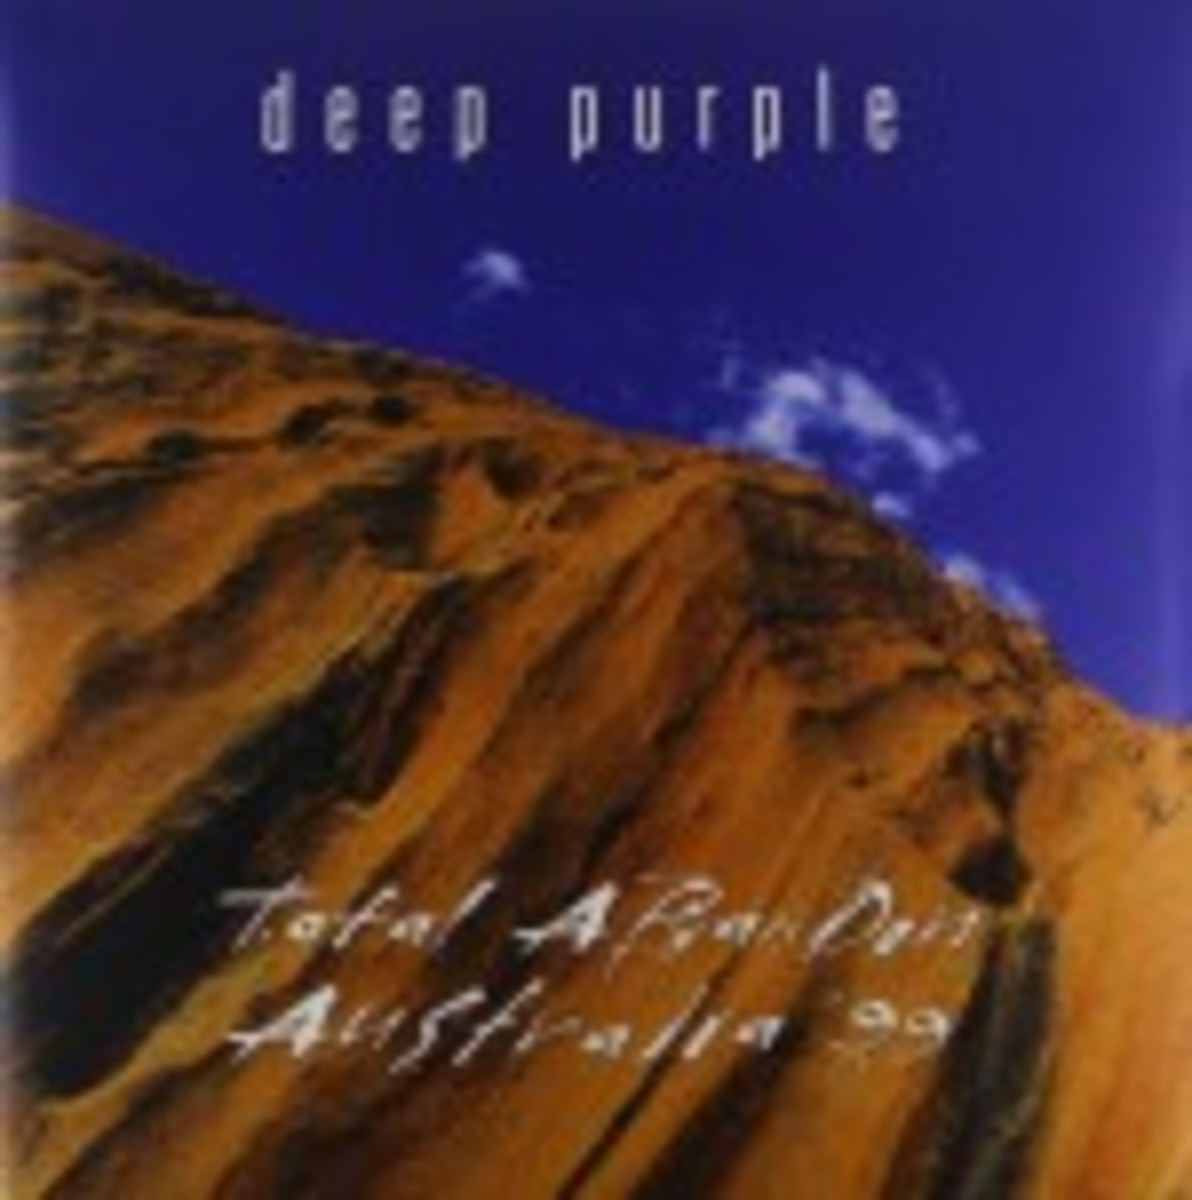 abandon-deep-purple